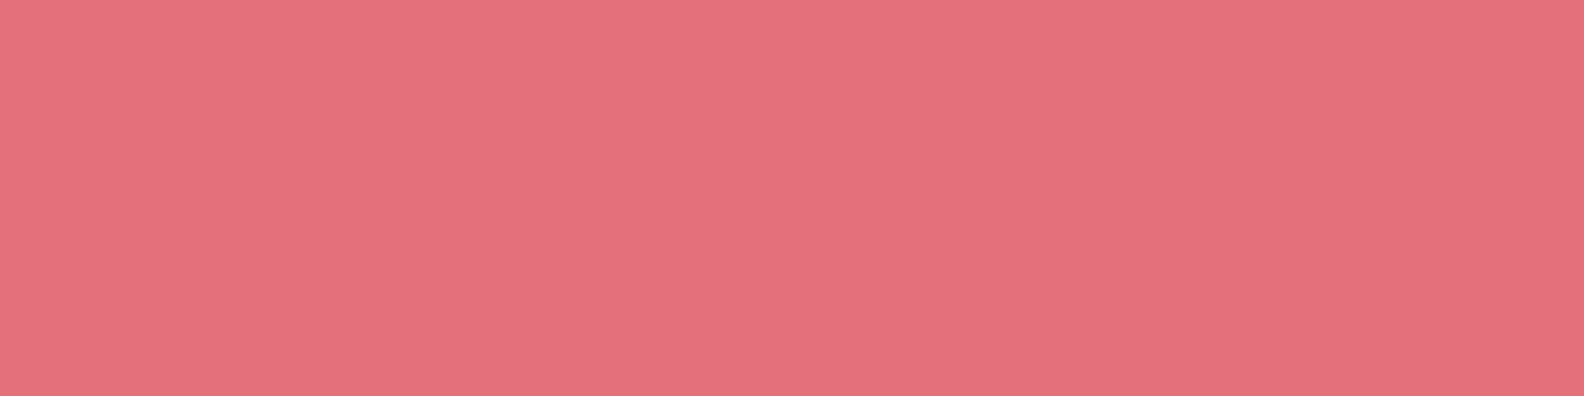 1584x396 Candy Pink Solid Color Background